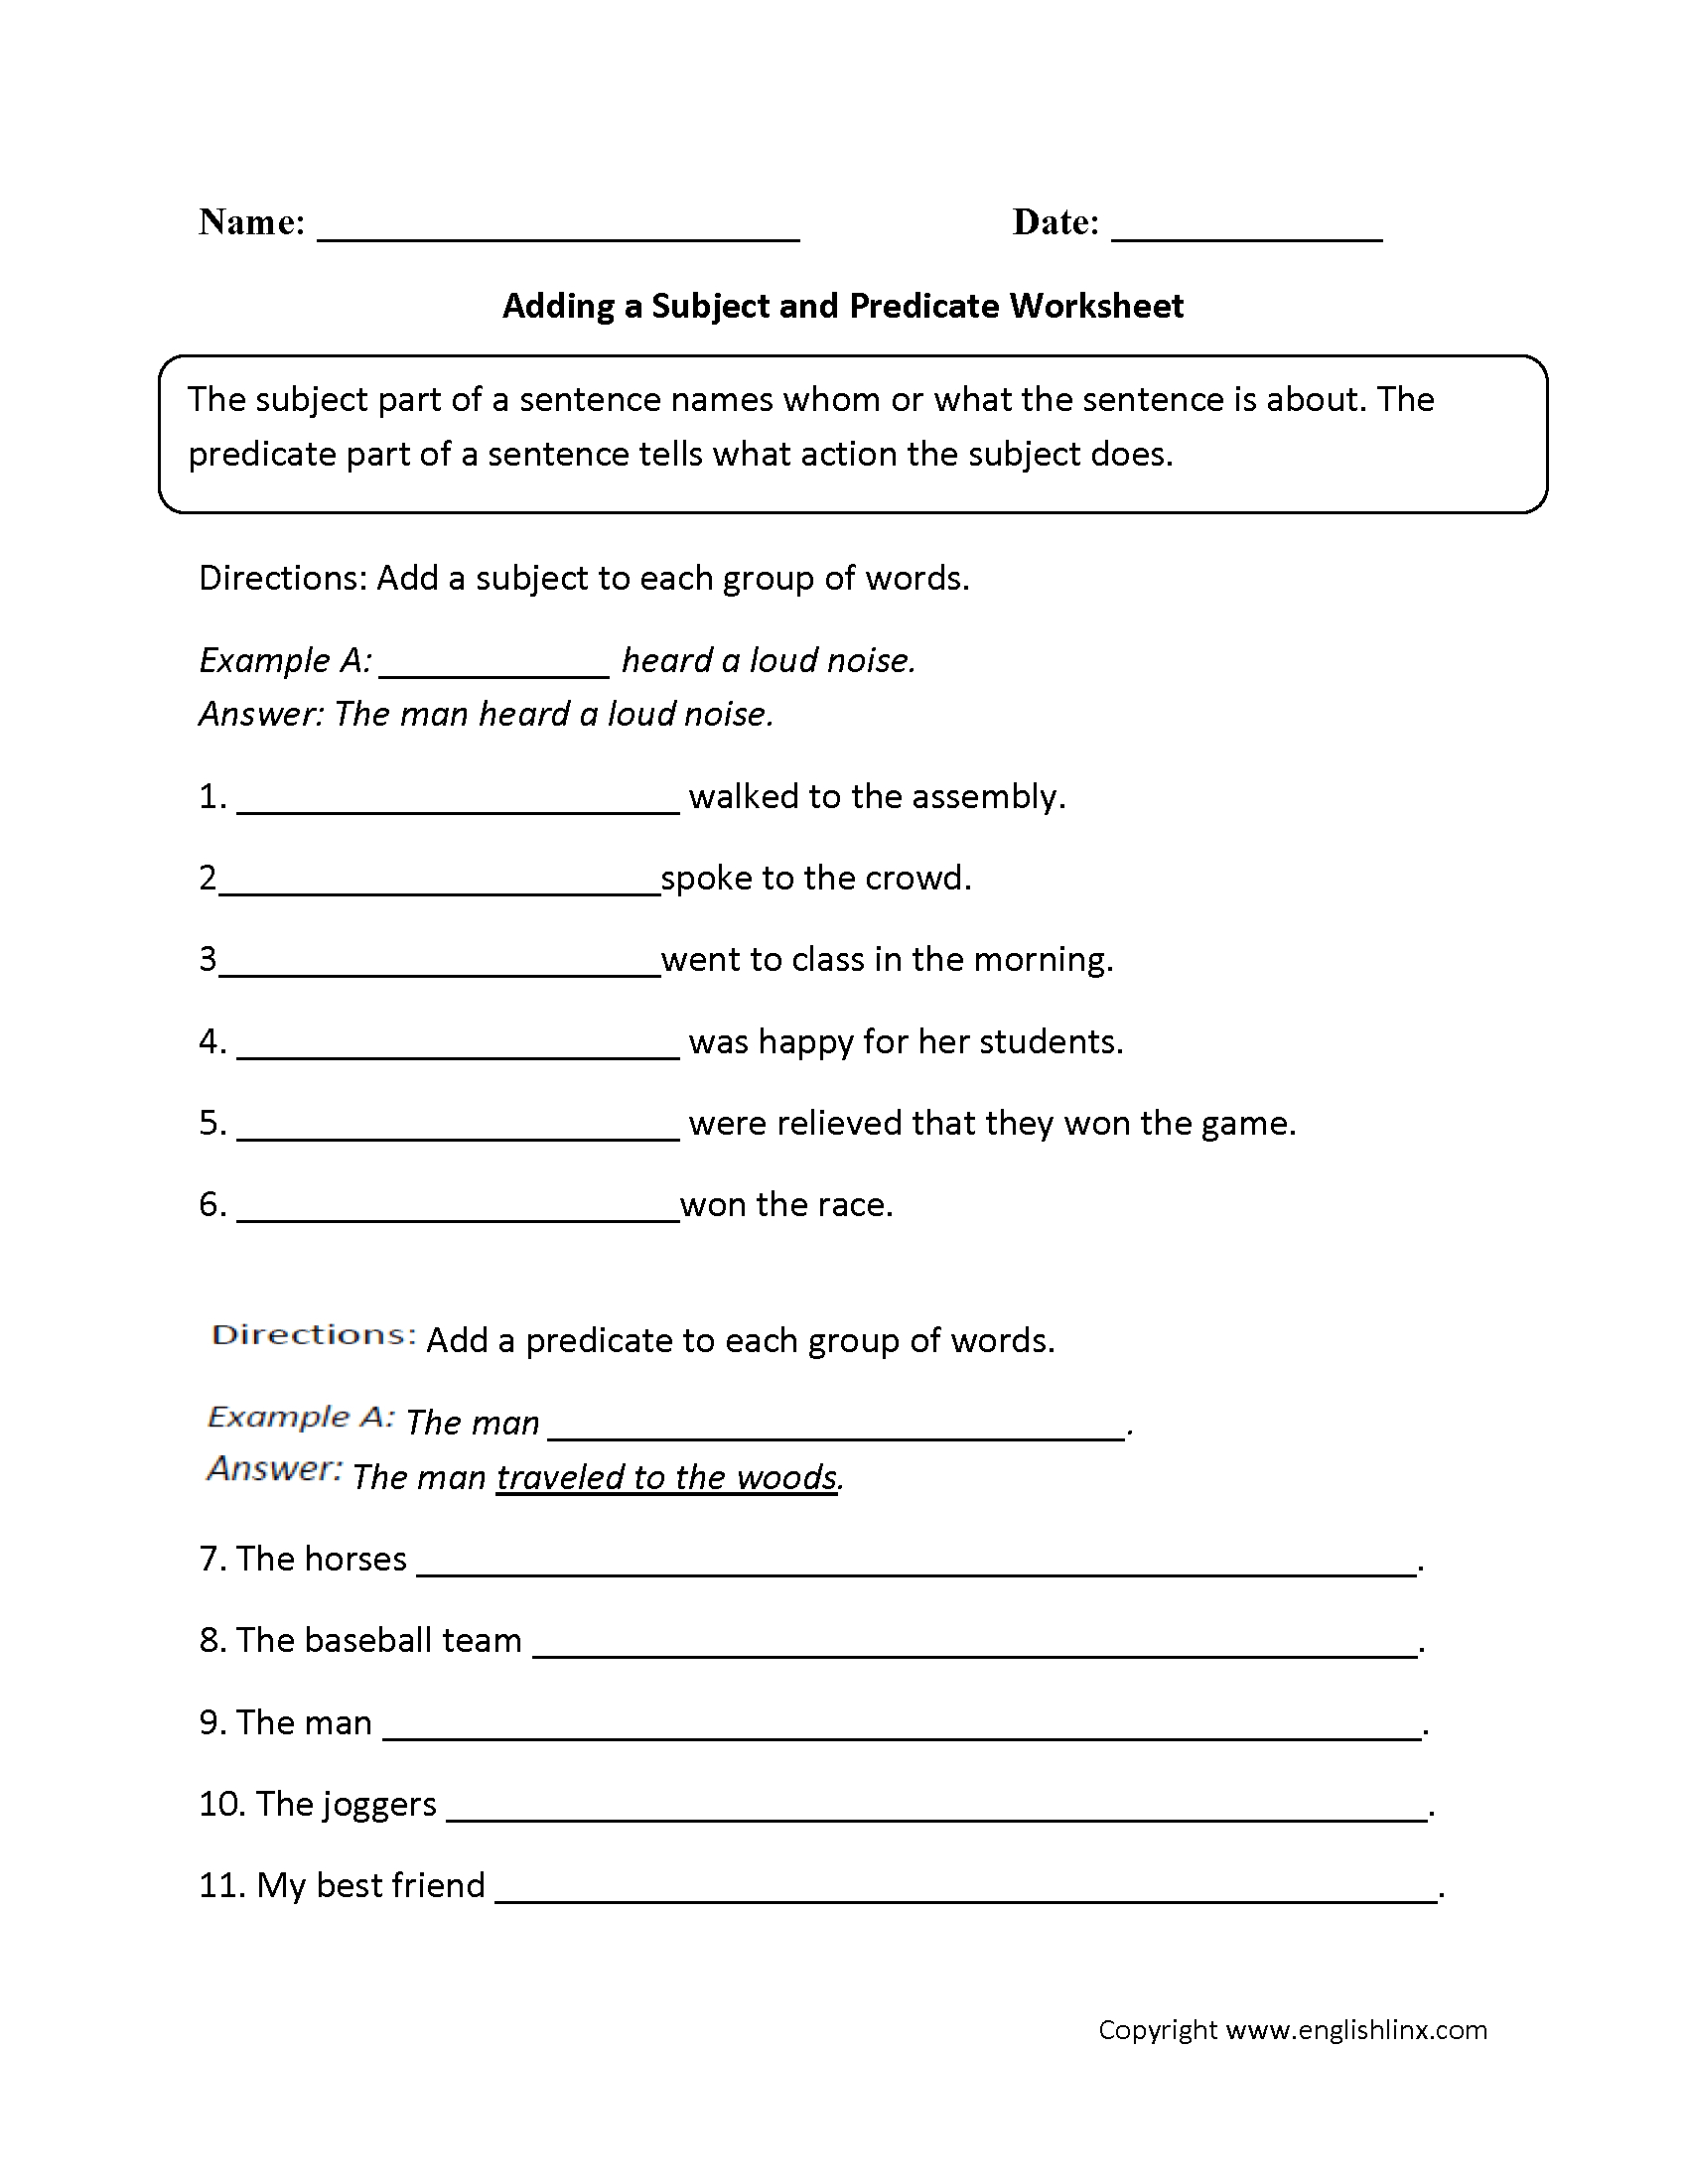 Englishlinx | Subject And Predicate Worksheets - 9Th Grade English | Free Printable 9Th Grade Grammar Worksheets